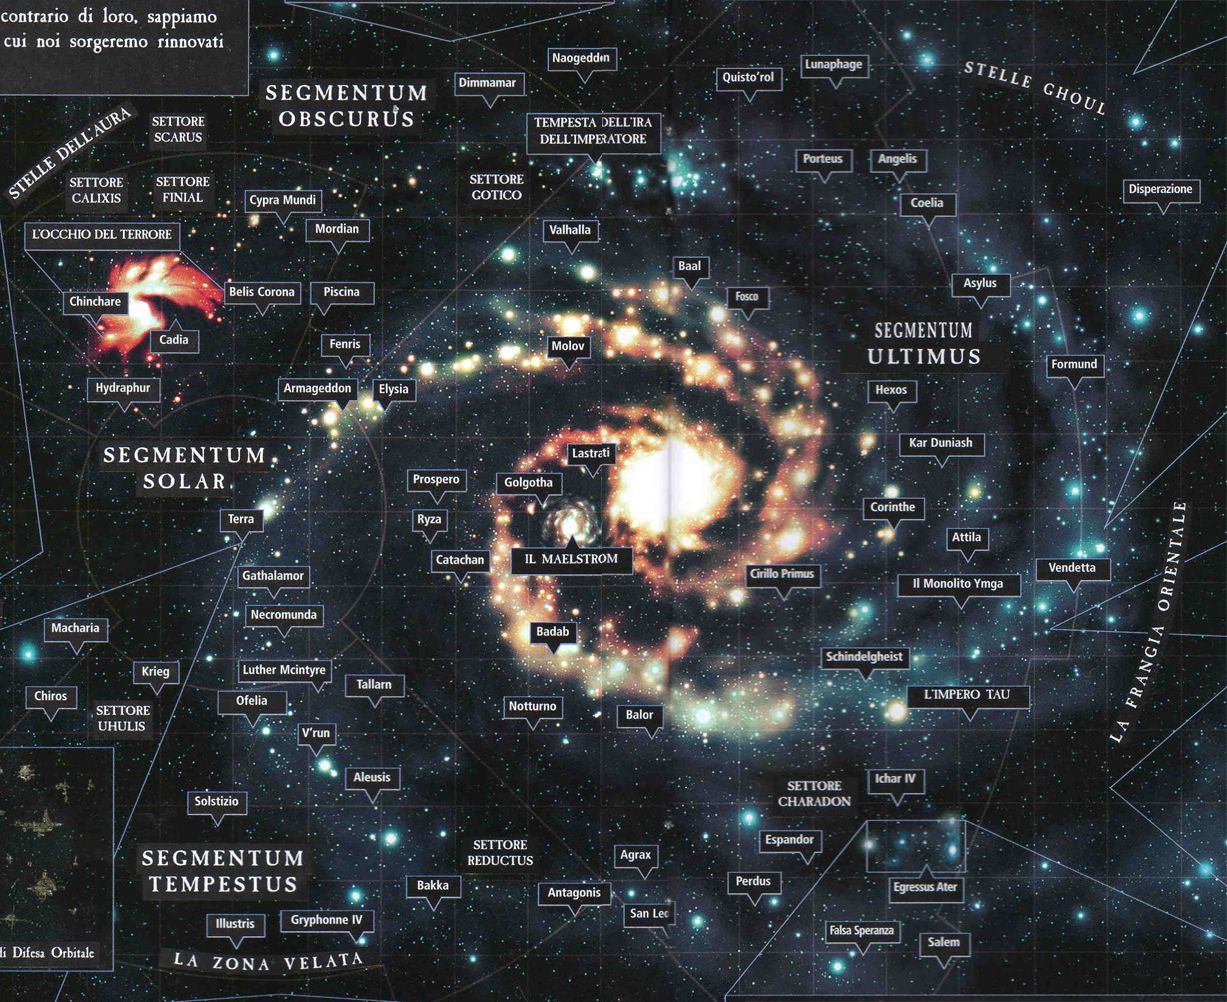 Pin by Robert Shea on 10K: Universe | Galaxy map, Space map ... Galaxy Maps on sun map, lightning map, milky way map, spectrum map, classic map, science map, astronomy map, world map, custom map, supreme map, universe map, venus map, solar system map, usa map, hotspot map, asteroid map, continents map, google map, constellation map, local supercluster map,